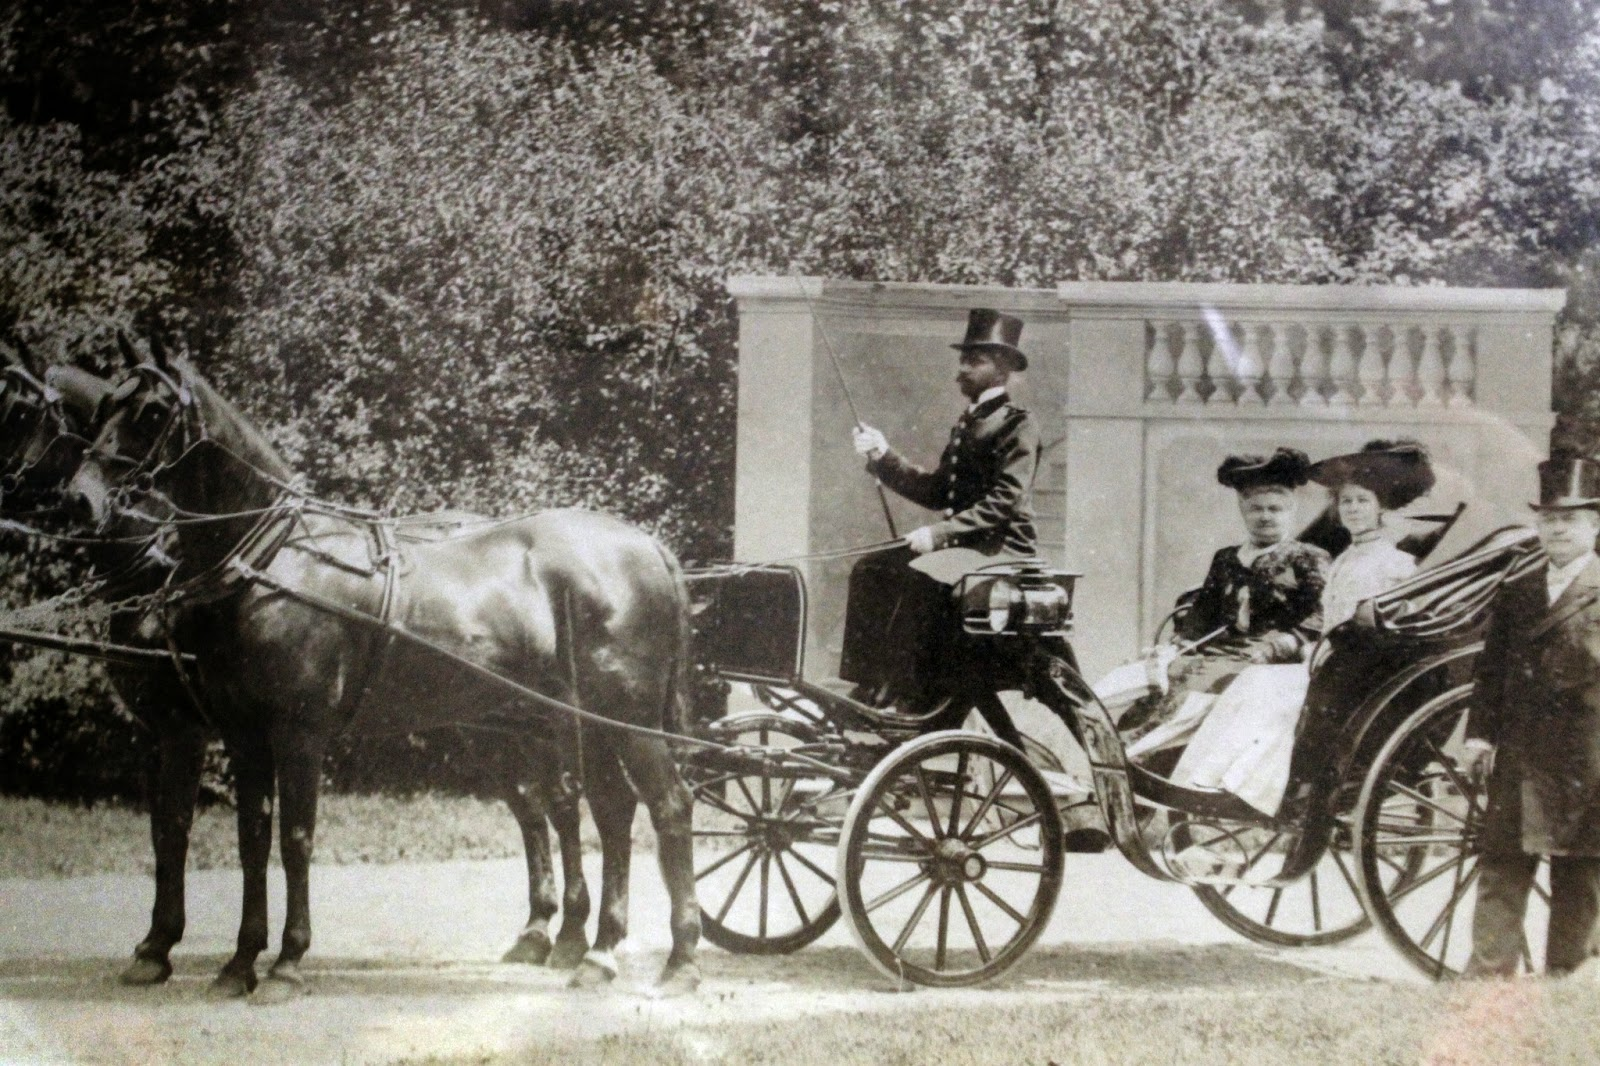 Indiana rush county - John K Gowdy At Far Right Wife Eve And Daughter Fanny In Coach Chaffeur Stephen Hordsbath And The Rush County Horses Paris France 1898